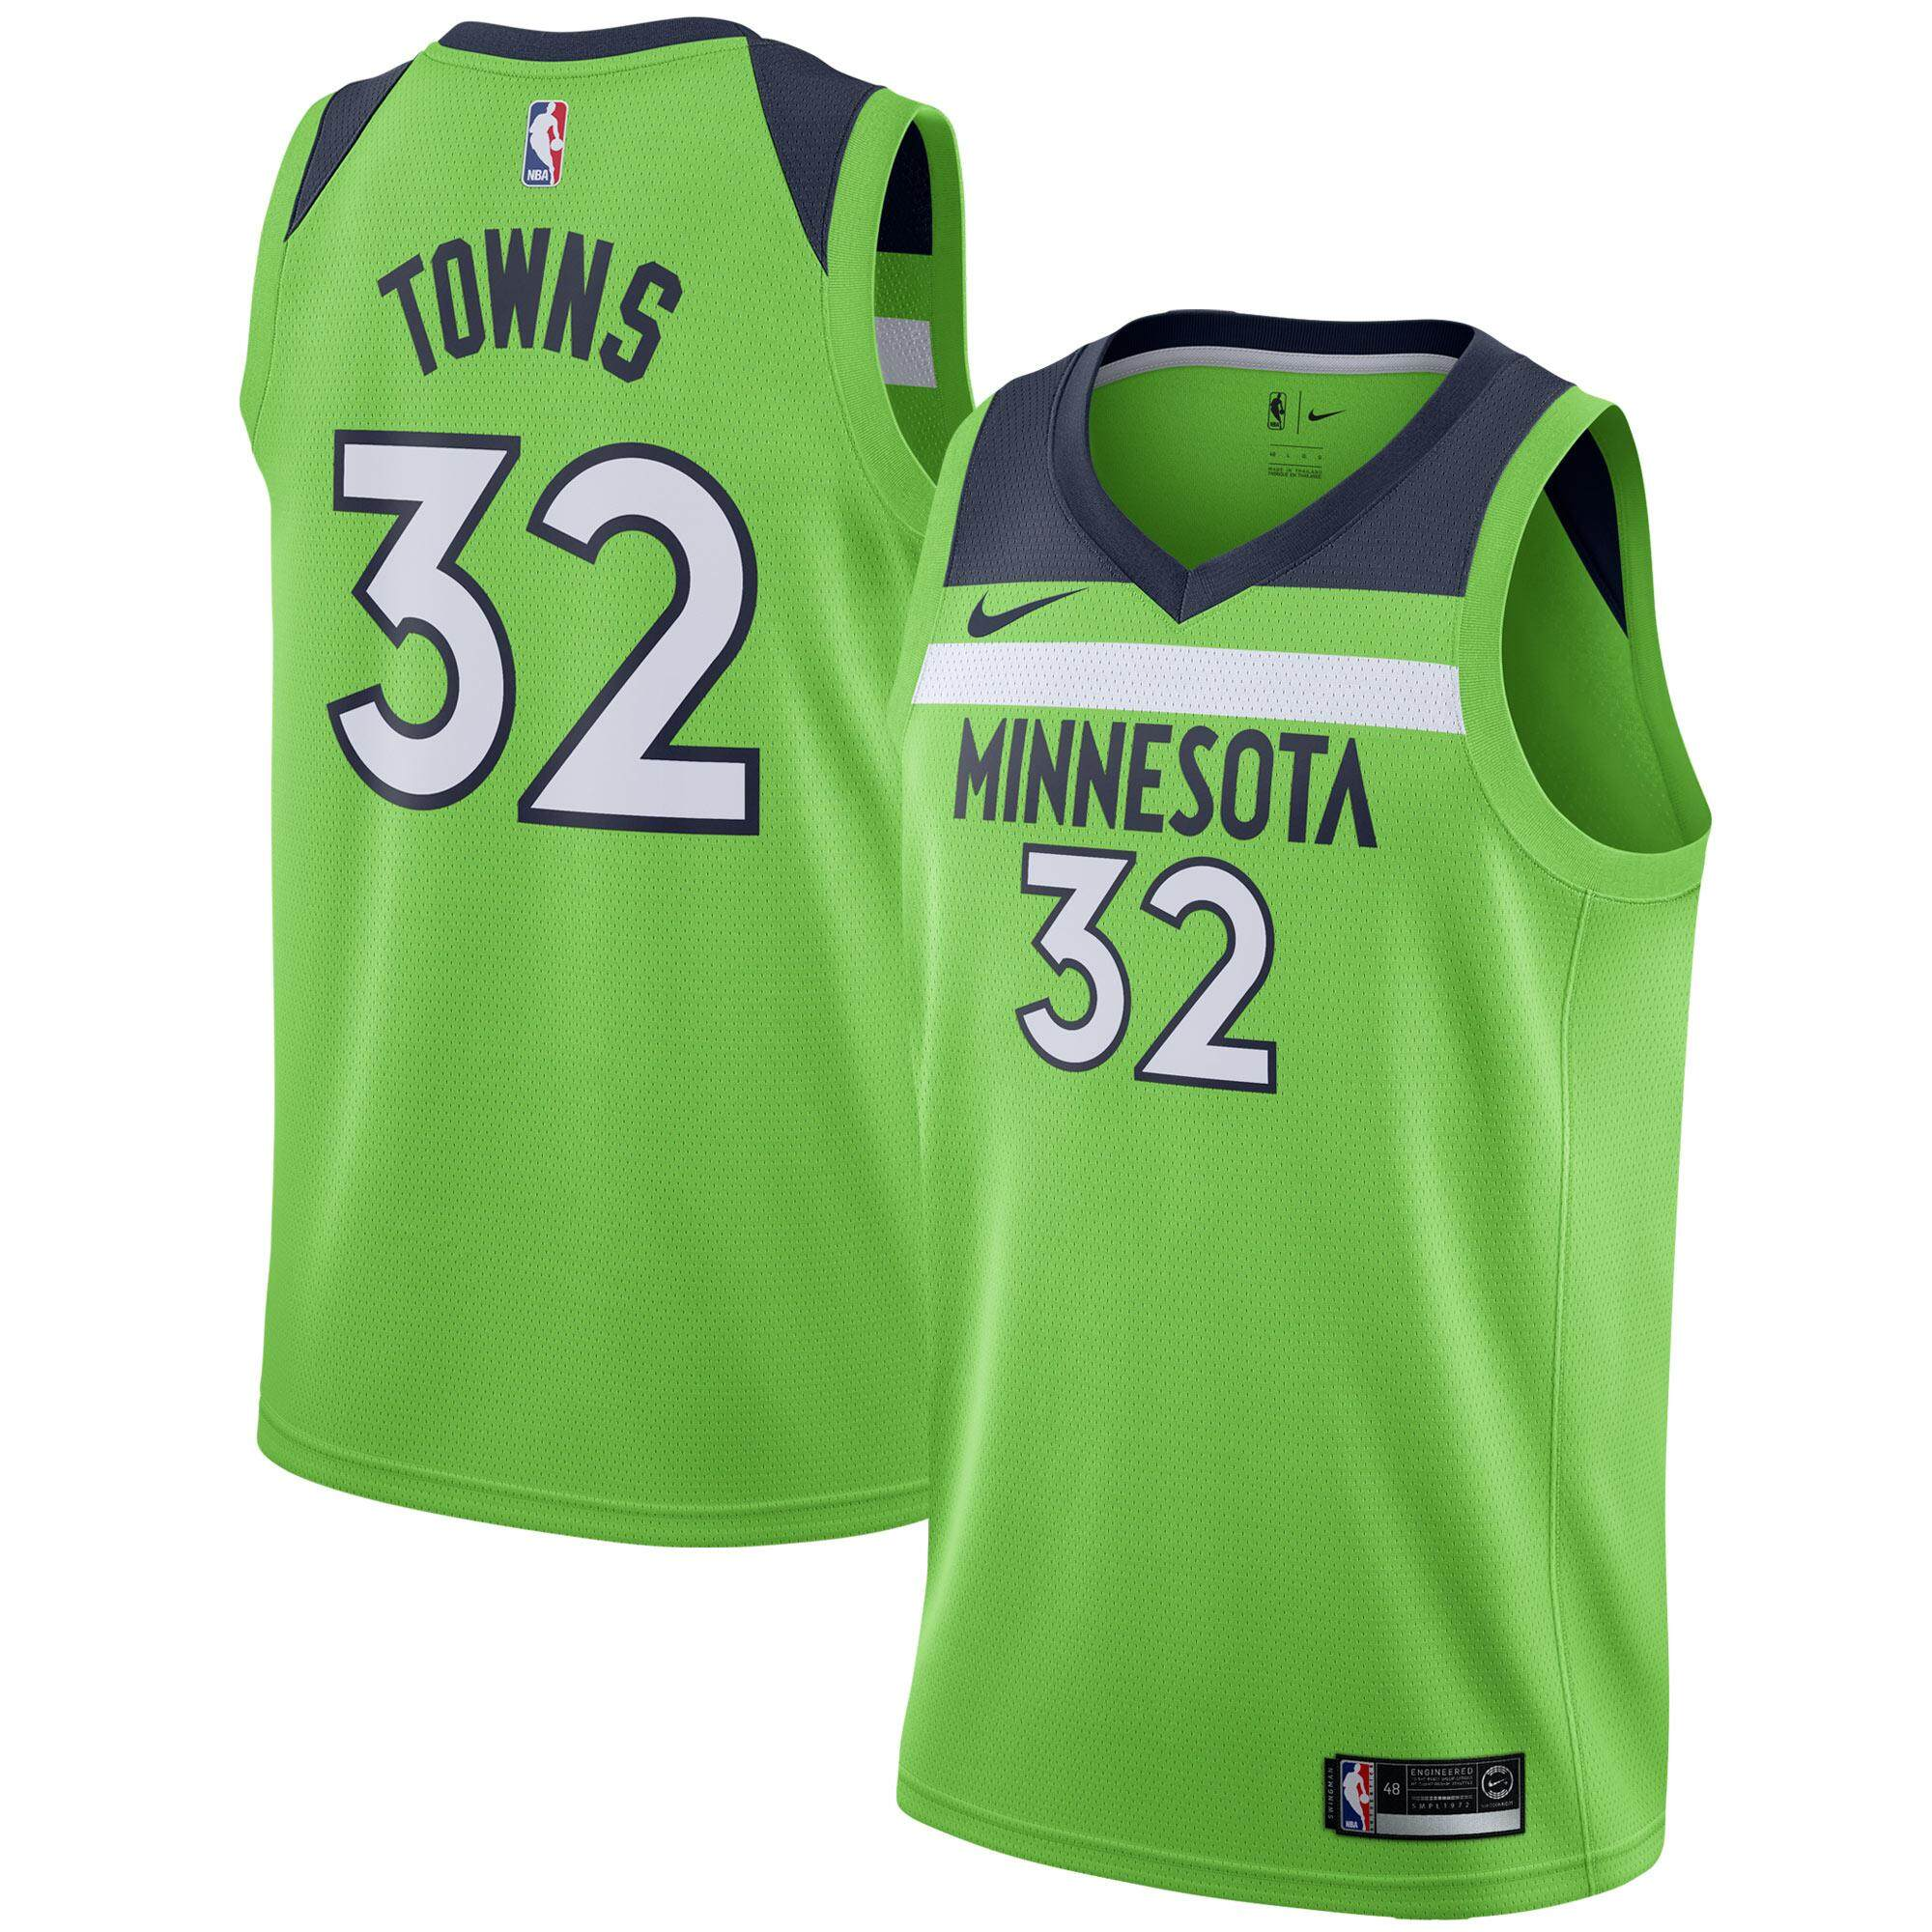 6aa629af2ce7 ... release date silver mens basketball clothes no.32 karl anthony towns swingman  jersey minnesota timberwolves